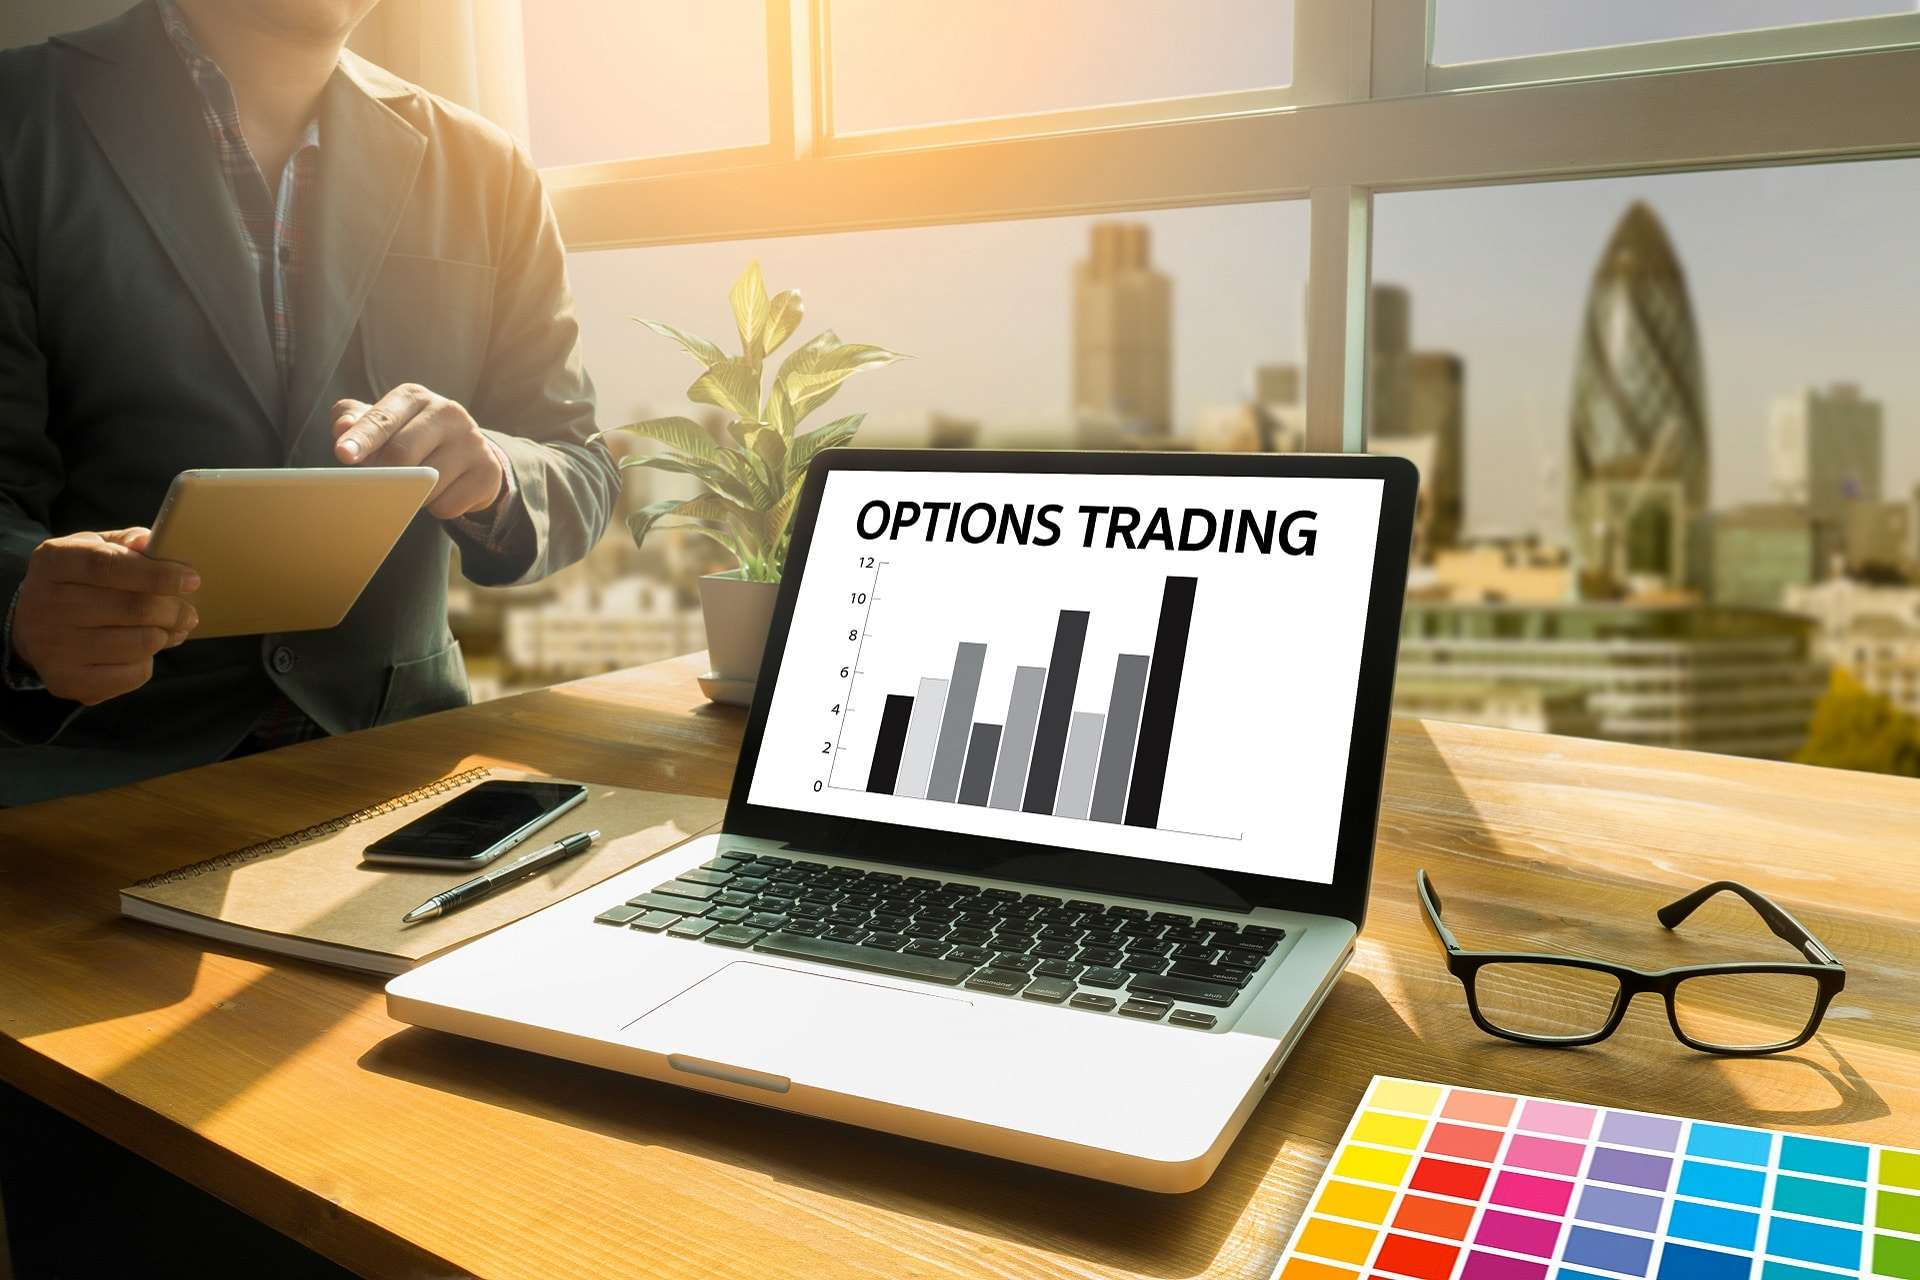 lost money options trading